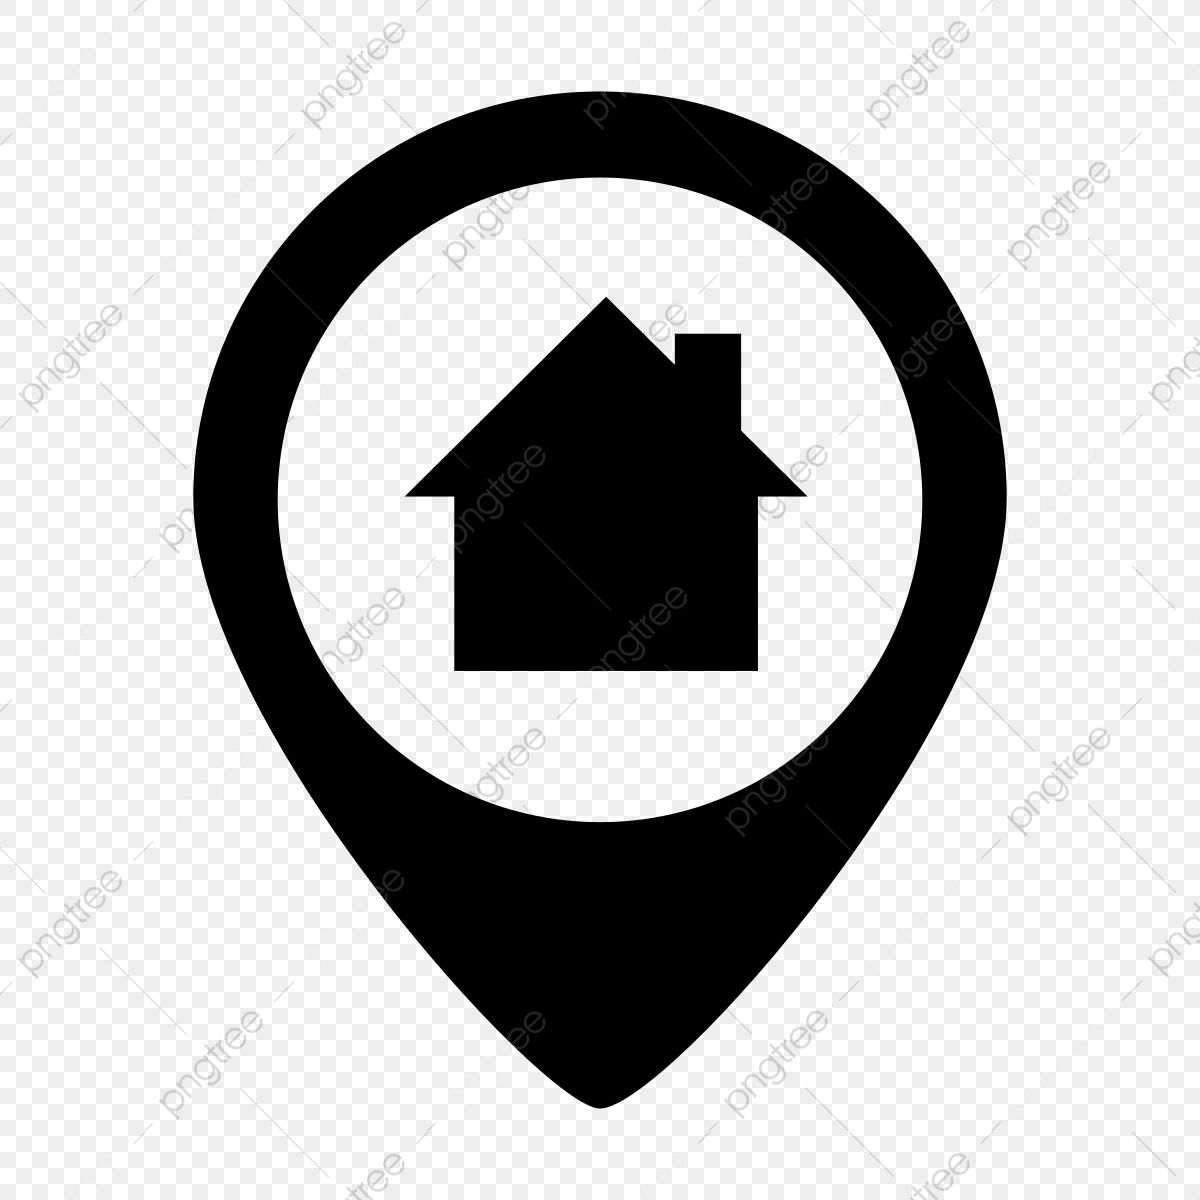 House Location Icon Location Icons House Icons Logo Png And Vector With Transparent Background For Free Download Location Icon Home Icon Business Icon